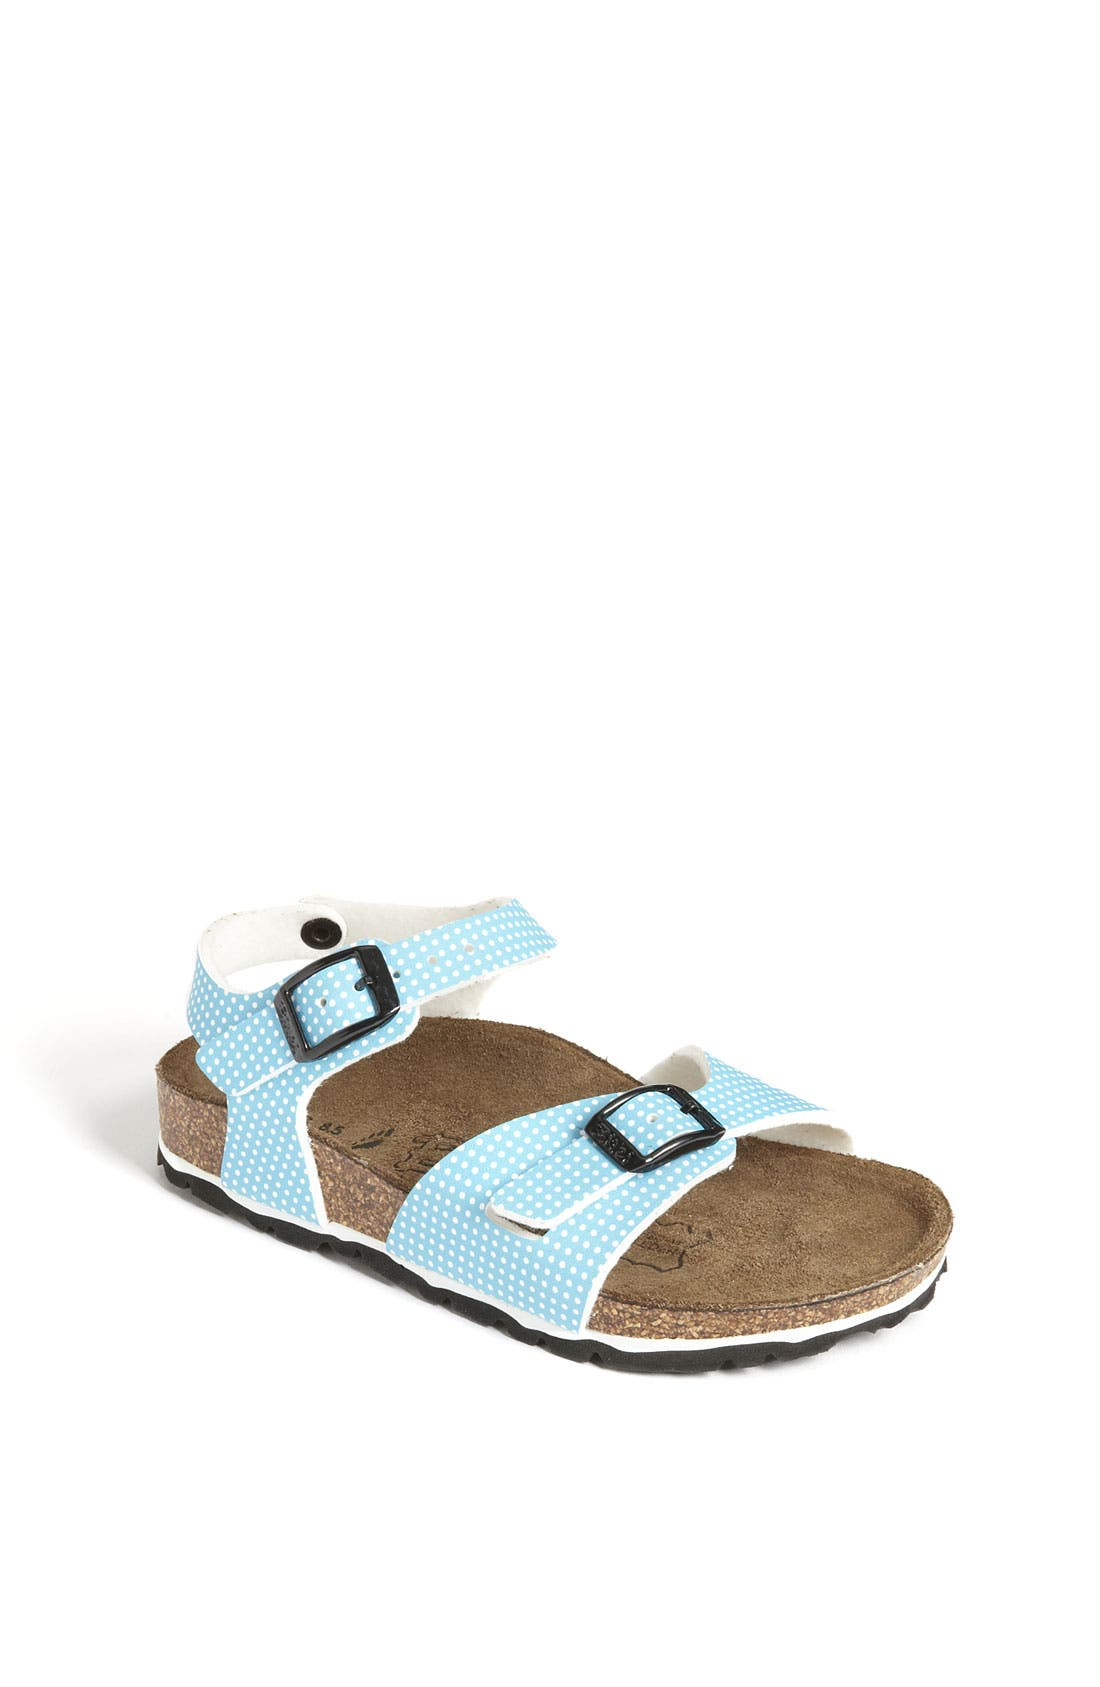 Main Image - Birki's® 'Tuvalu' Sandal (Toddler & Little Kid)